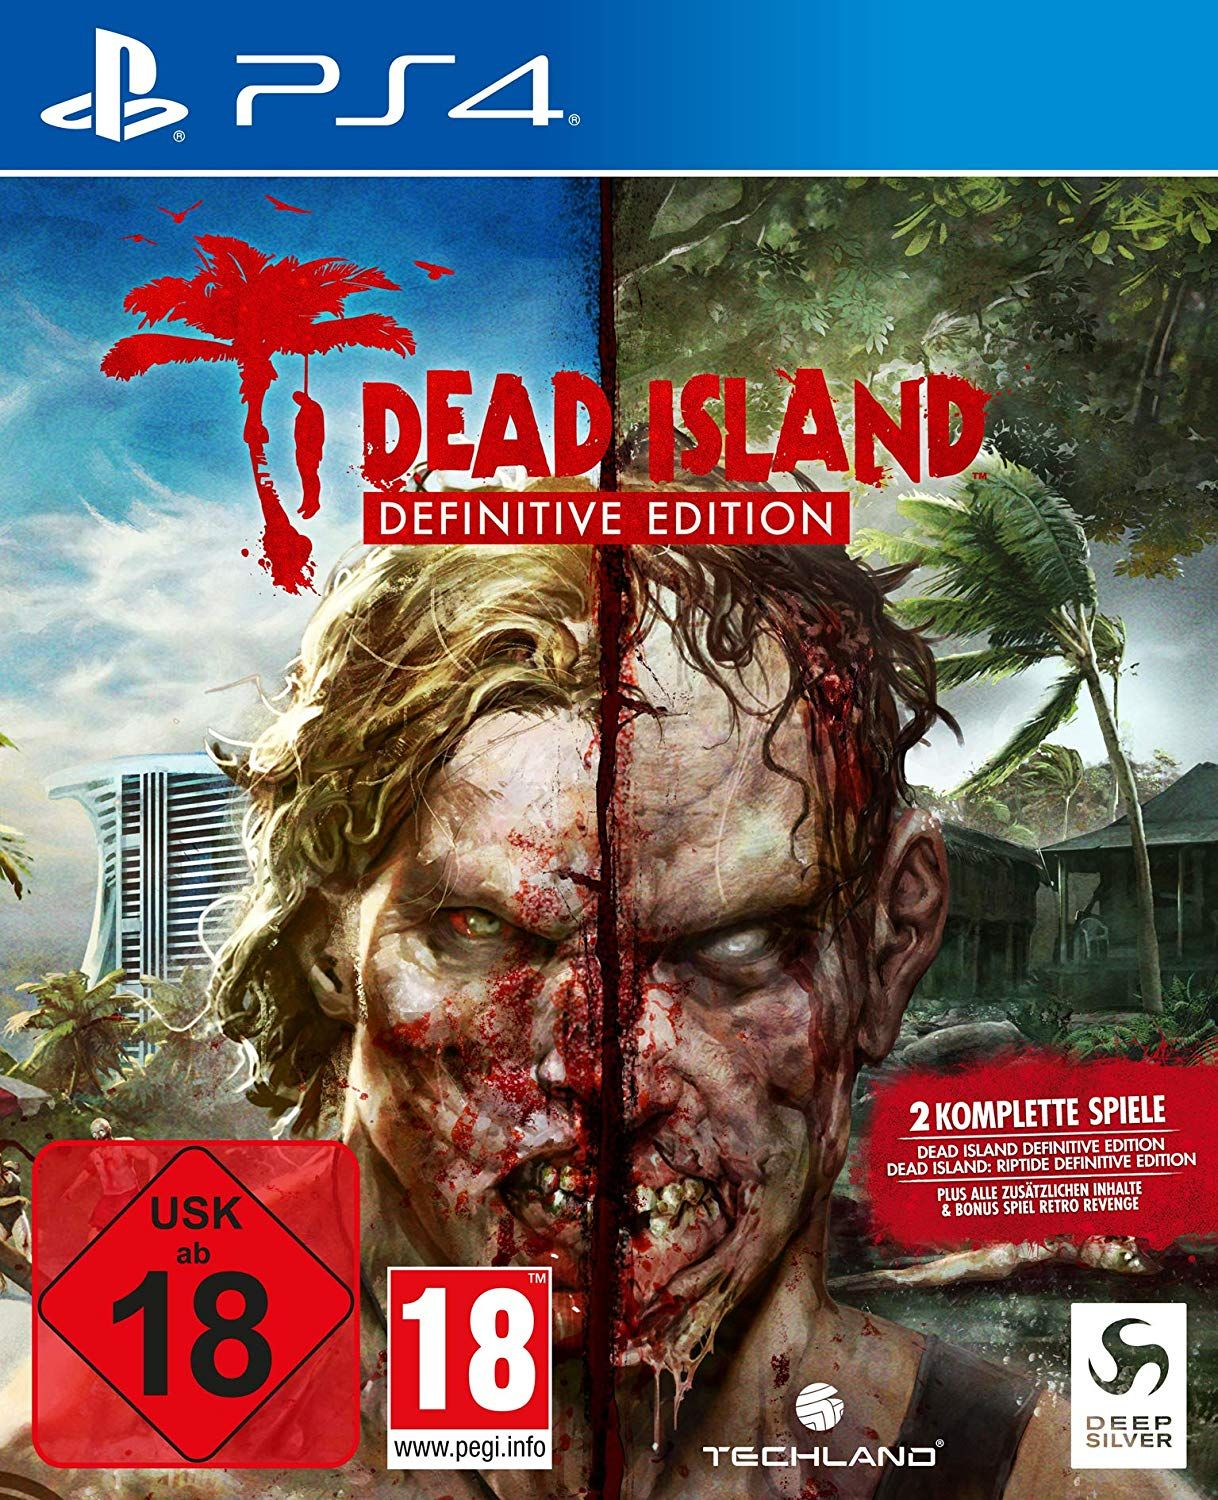 Dead Island - Definitive Edition Collection